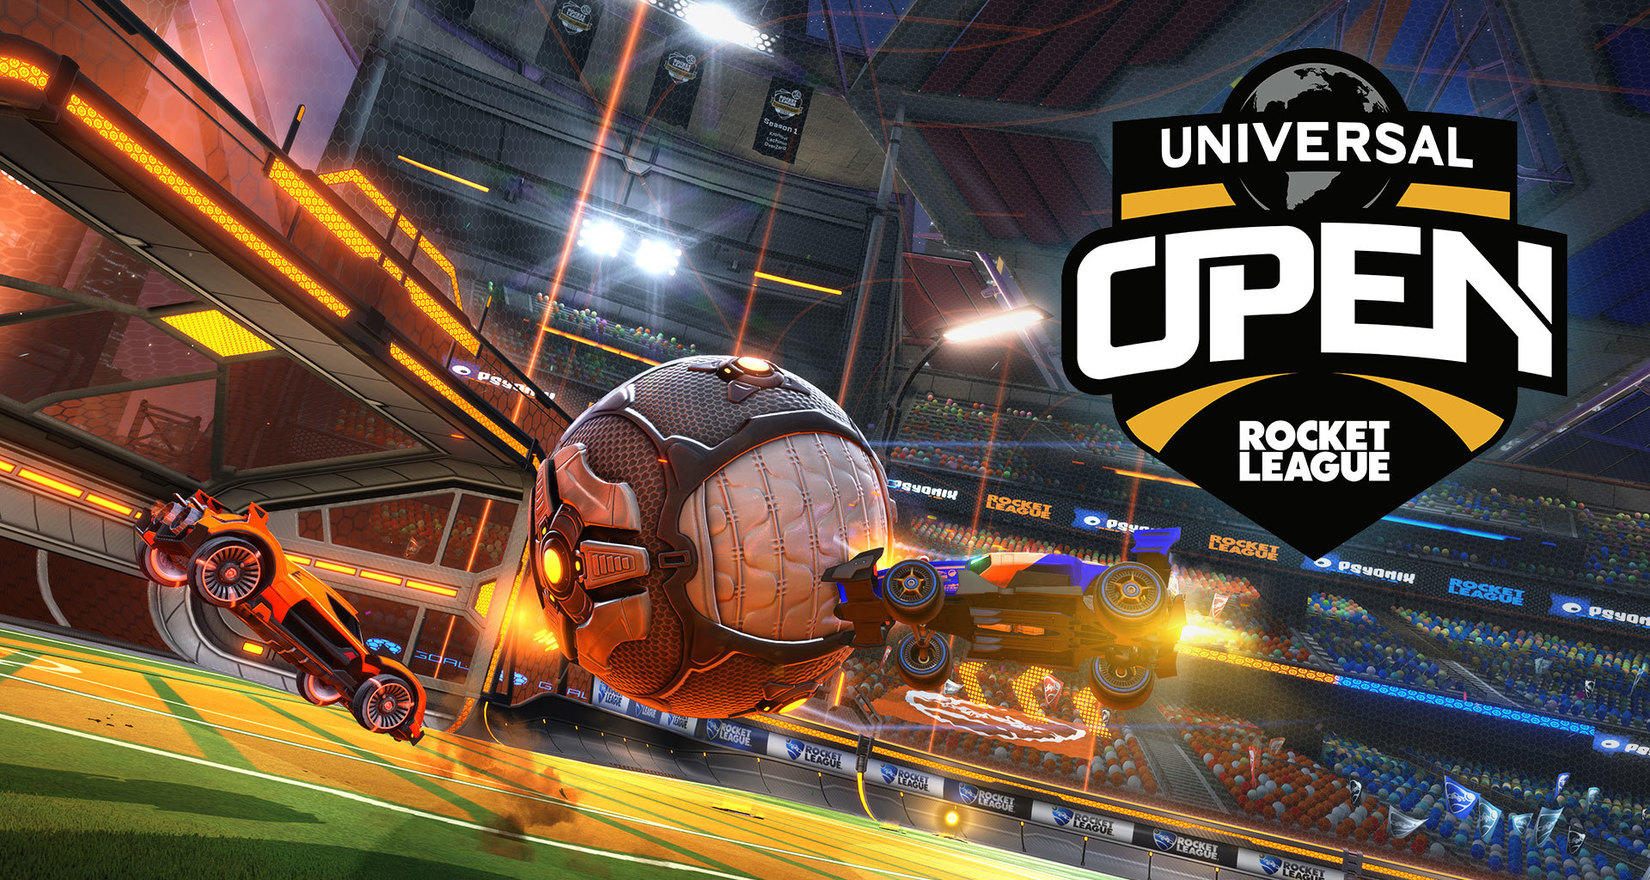 Rocket League Universal Open On NBCSN (Photo: NBC Sports)